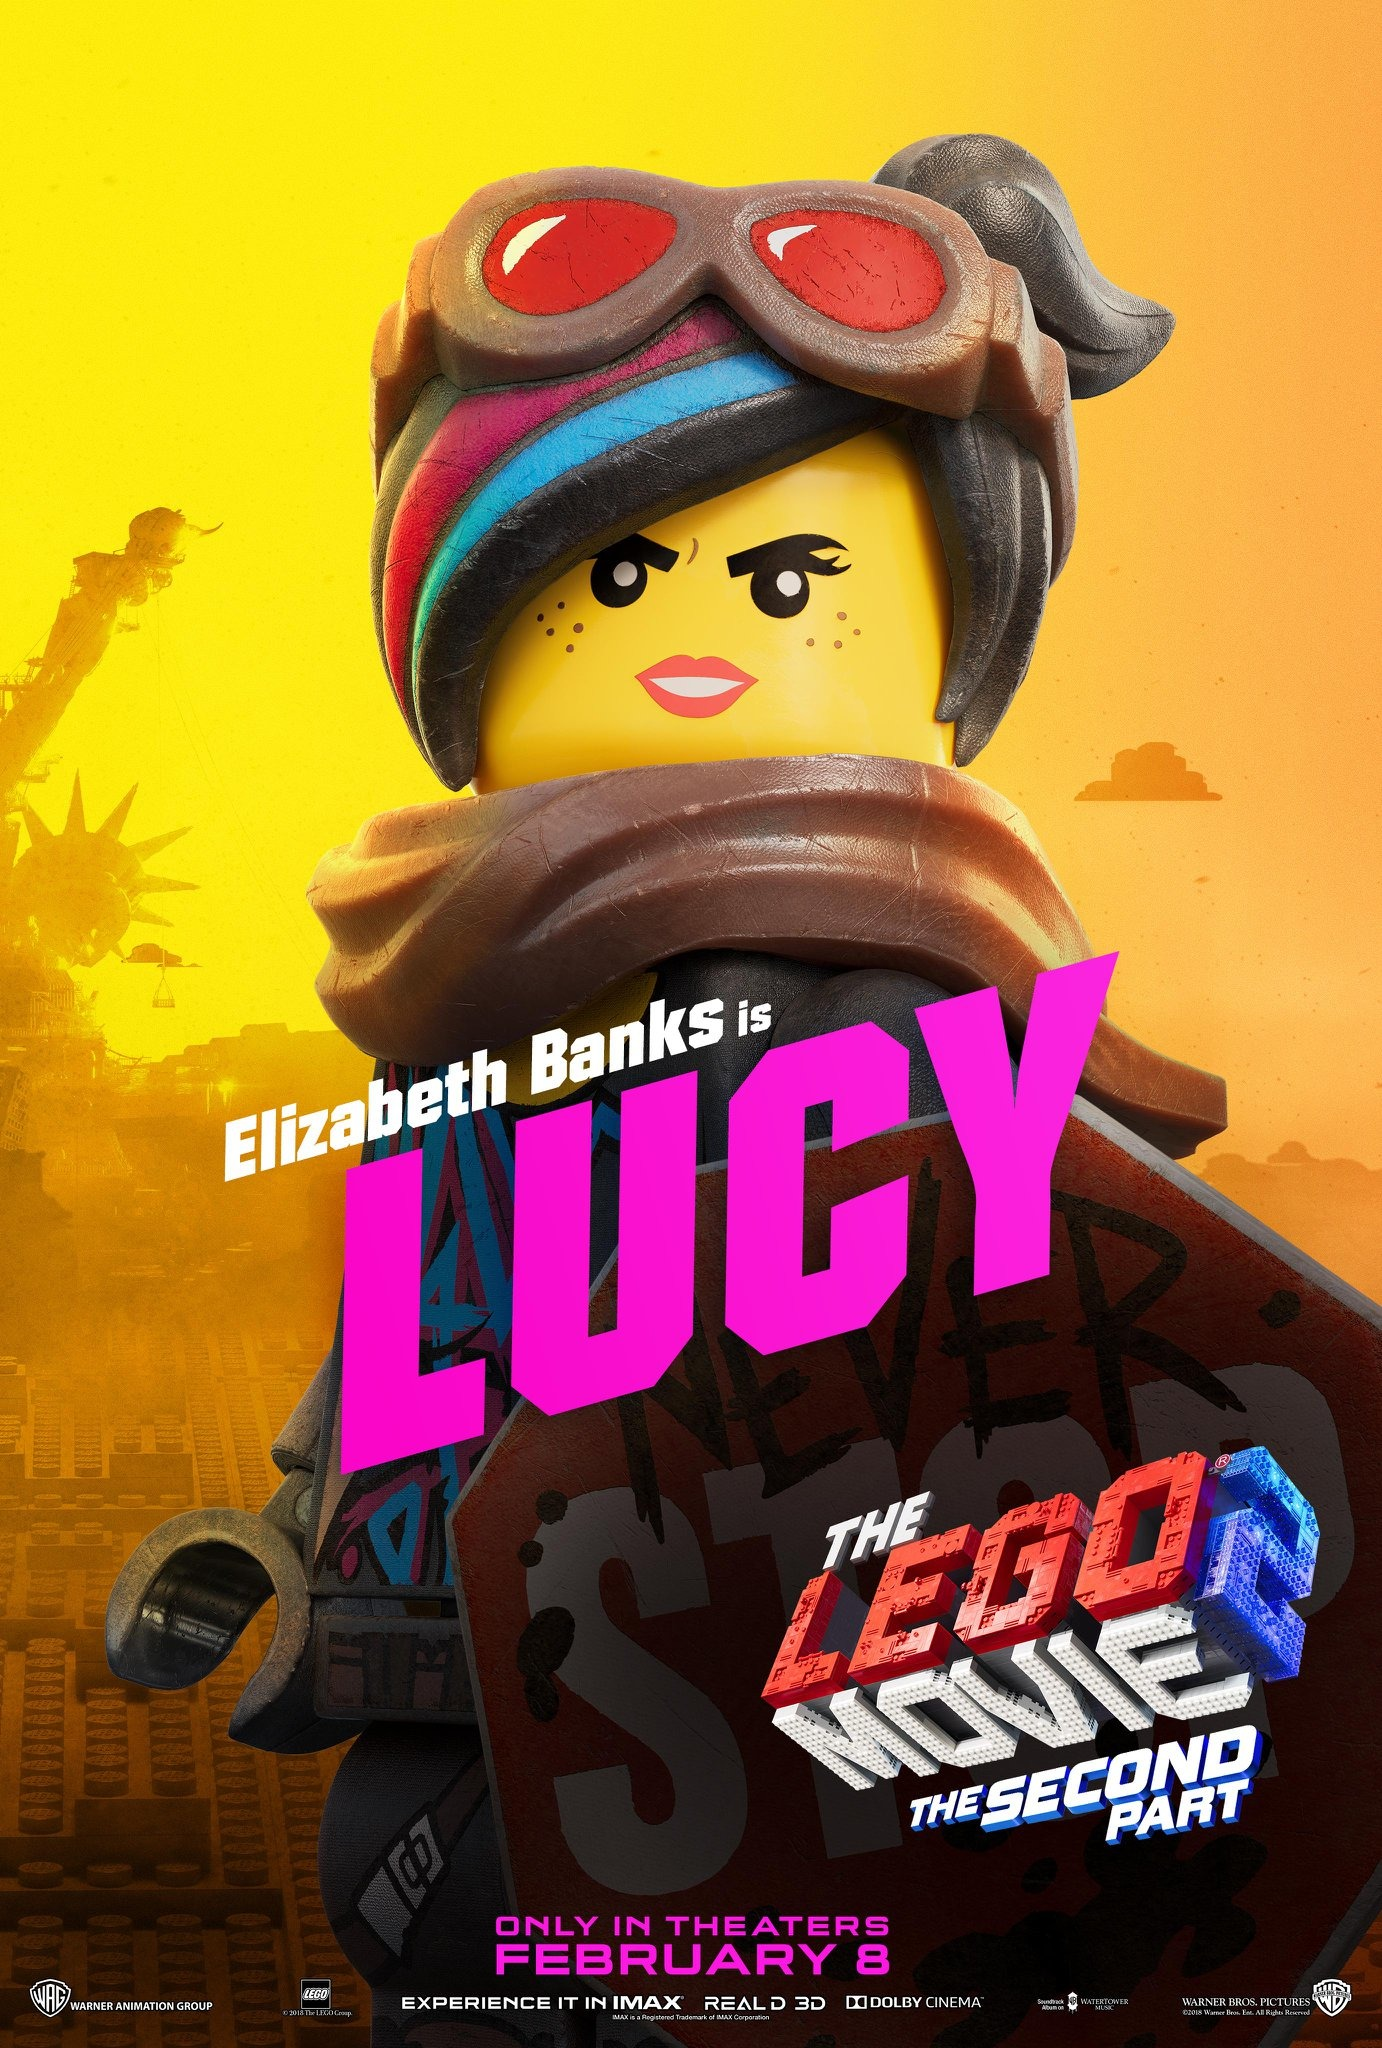 The Lego Movie 2 The Second Part Character Posters Elizabeth Banks is Lucy